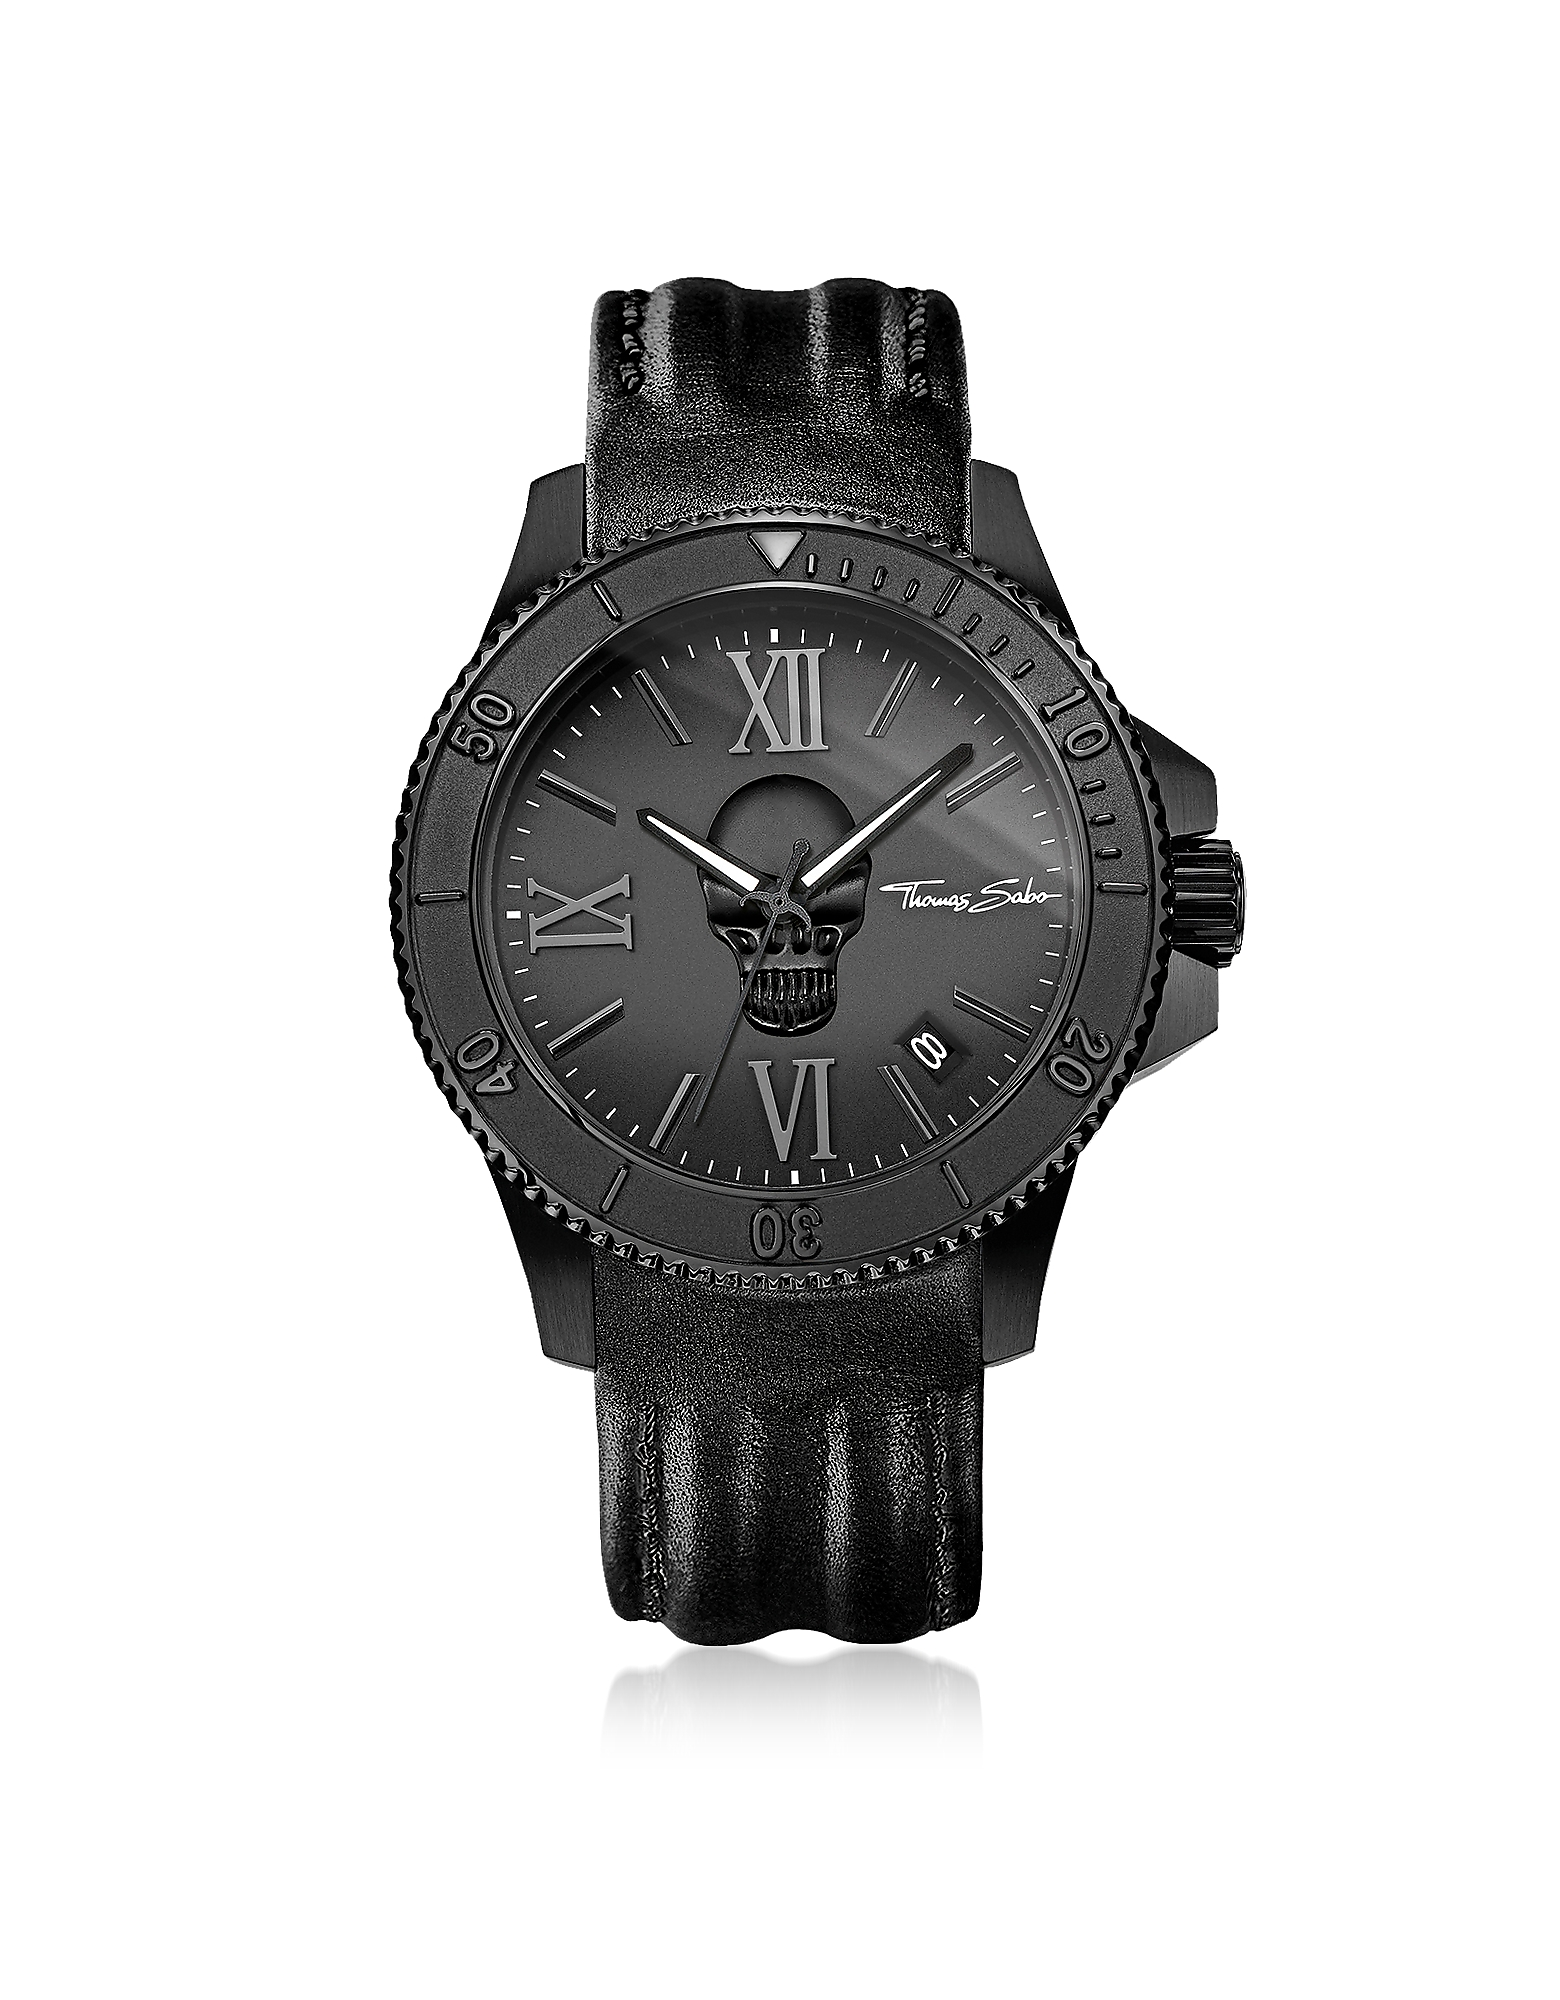 Thomas Sabo Men's Watches, Rebel Icon Black Stainless Steel Men's Watch w/Leather Strap